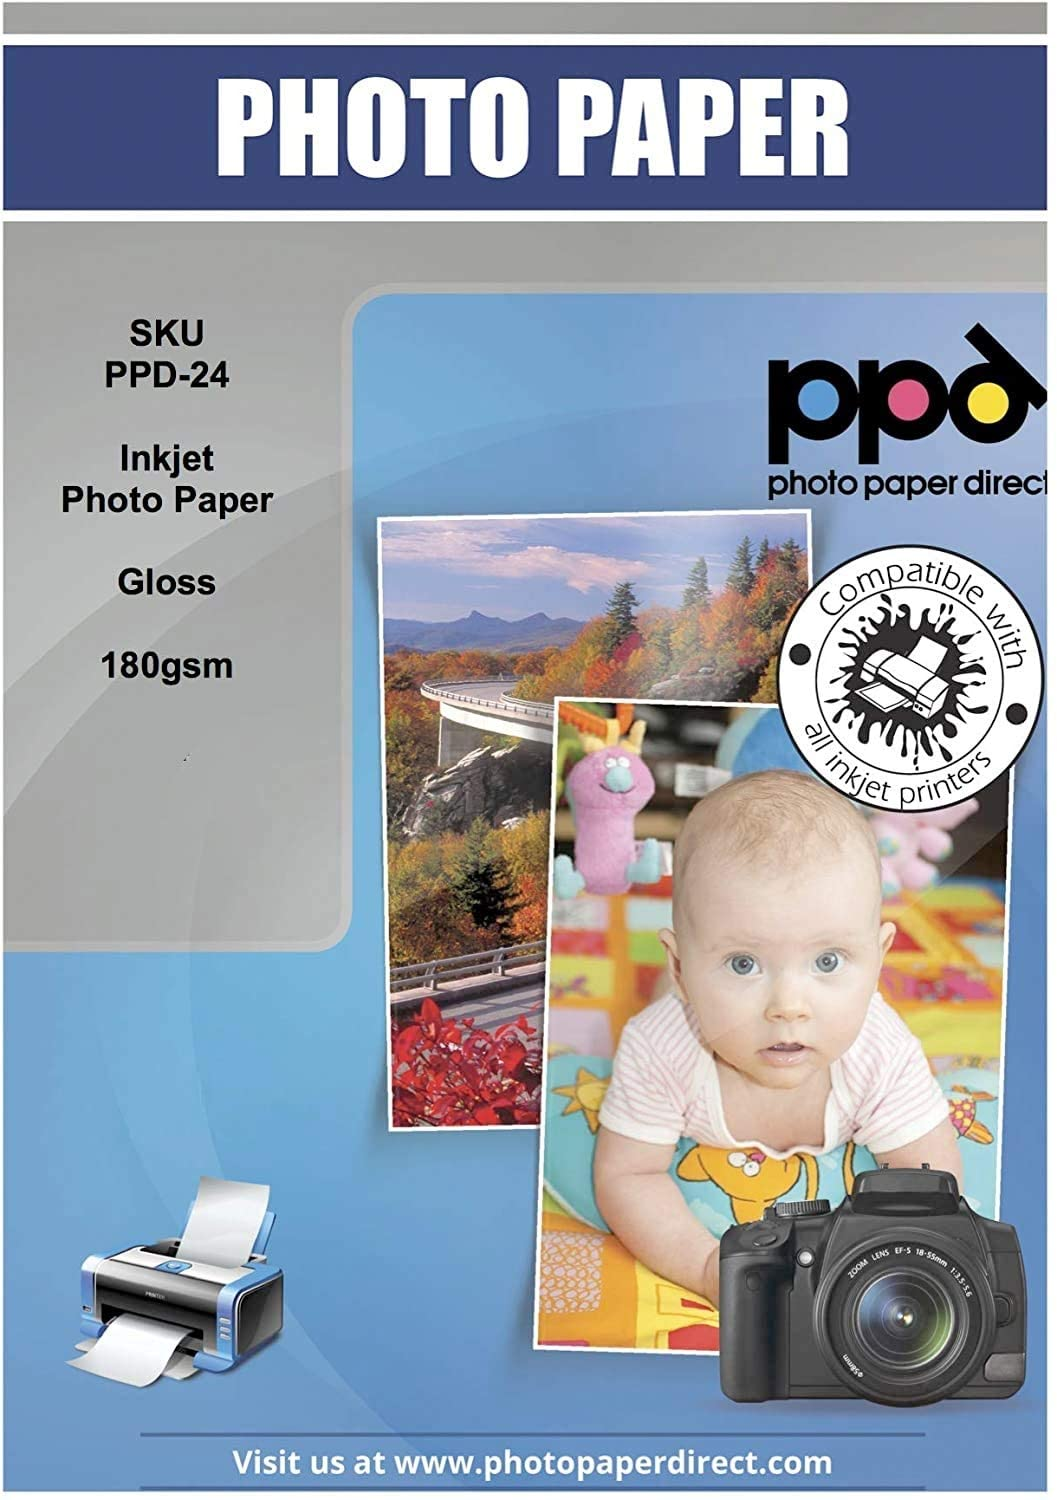 PPD Inkjet Glossy Photo Paper 180g A4 X 50 Sheets PPD-24-50 uk reviews